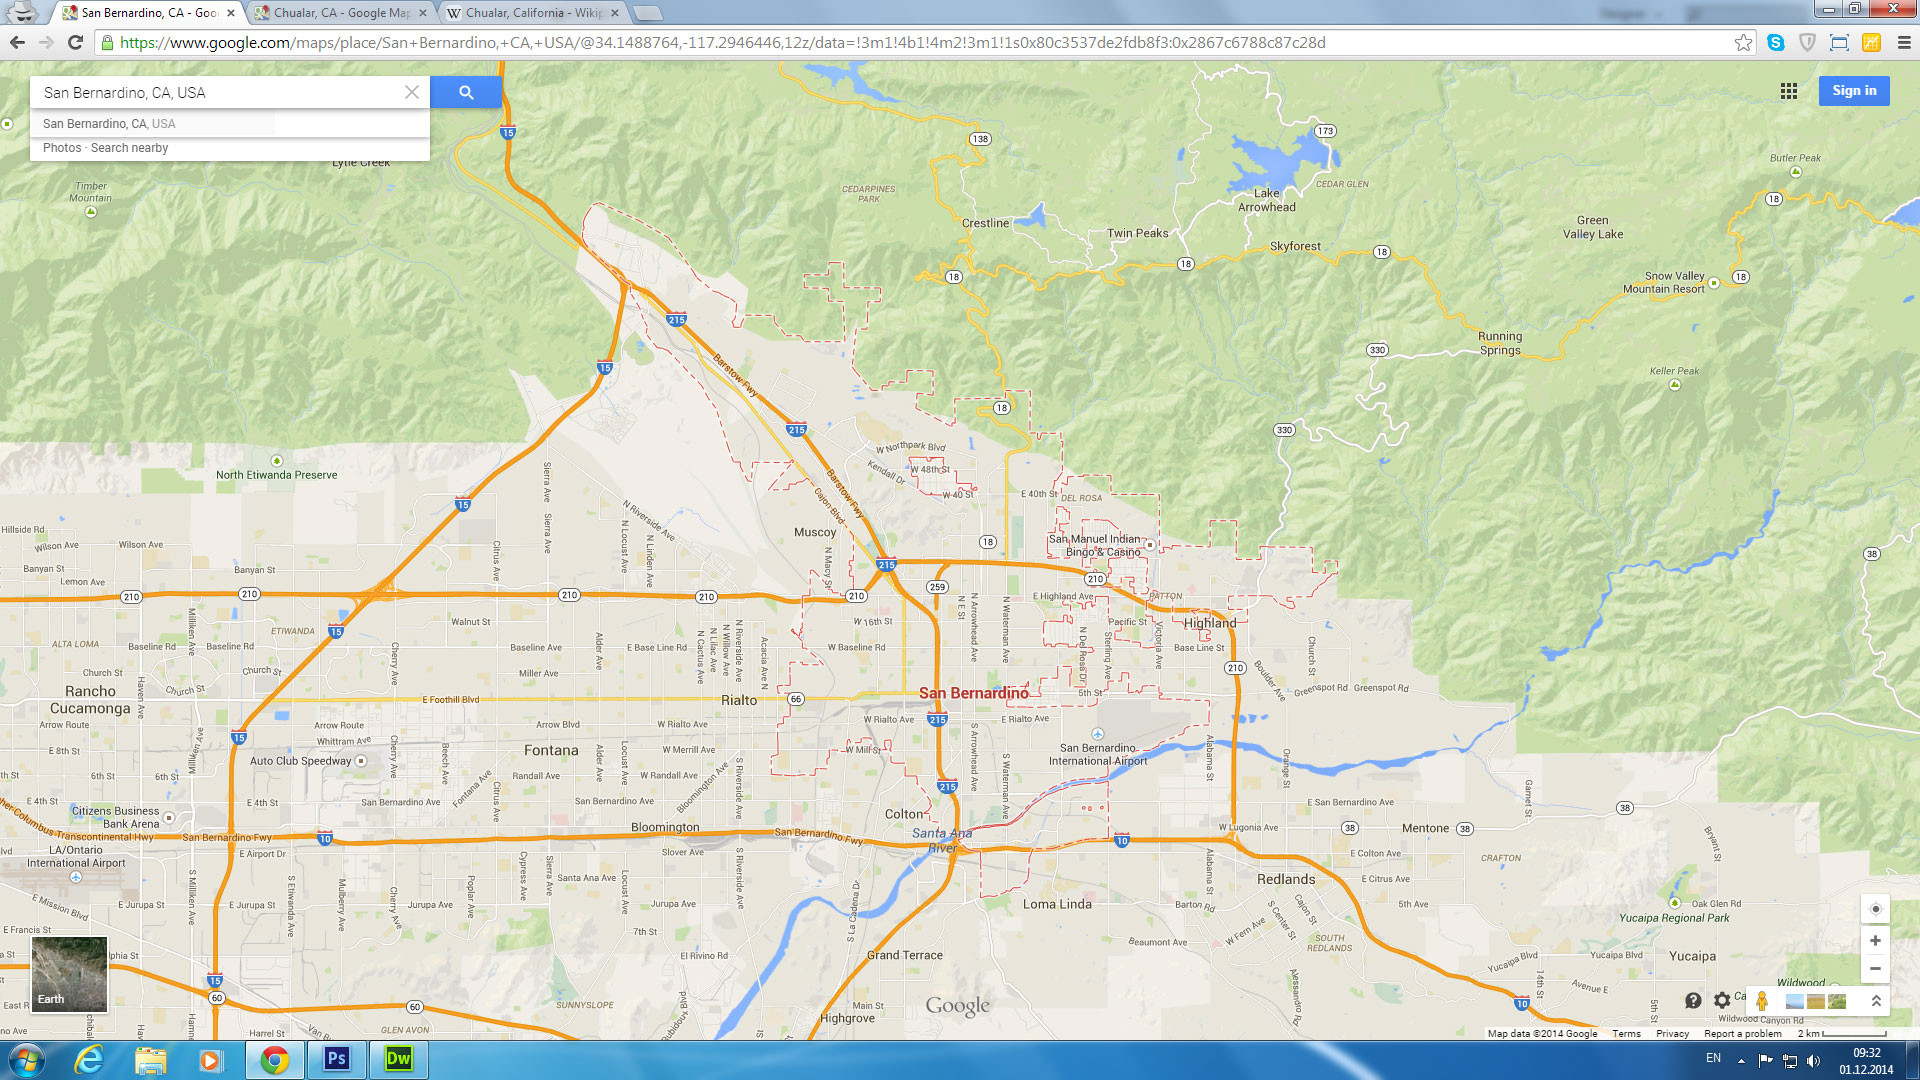 Map Of West Covina California Detailed San Bernardino California Map - West Covina California Map